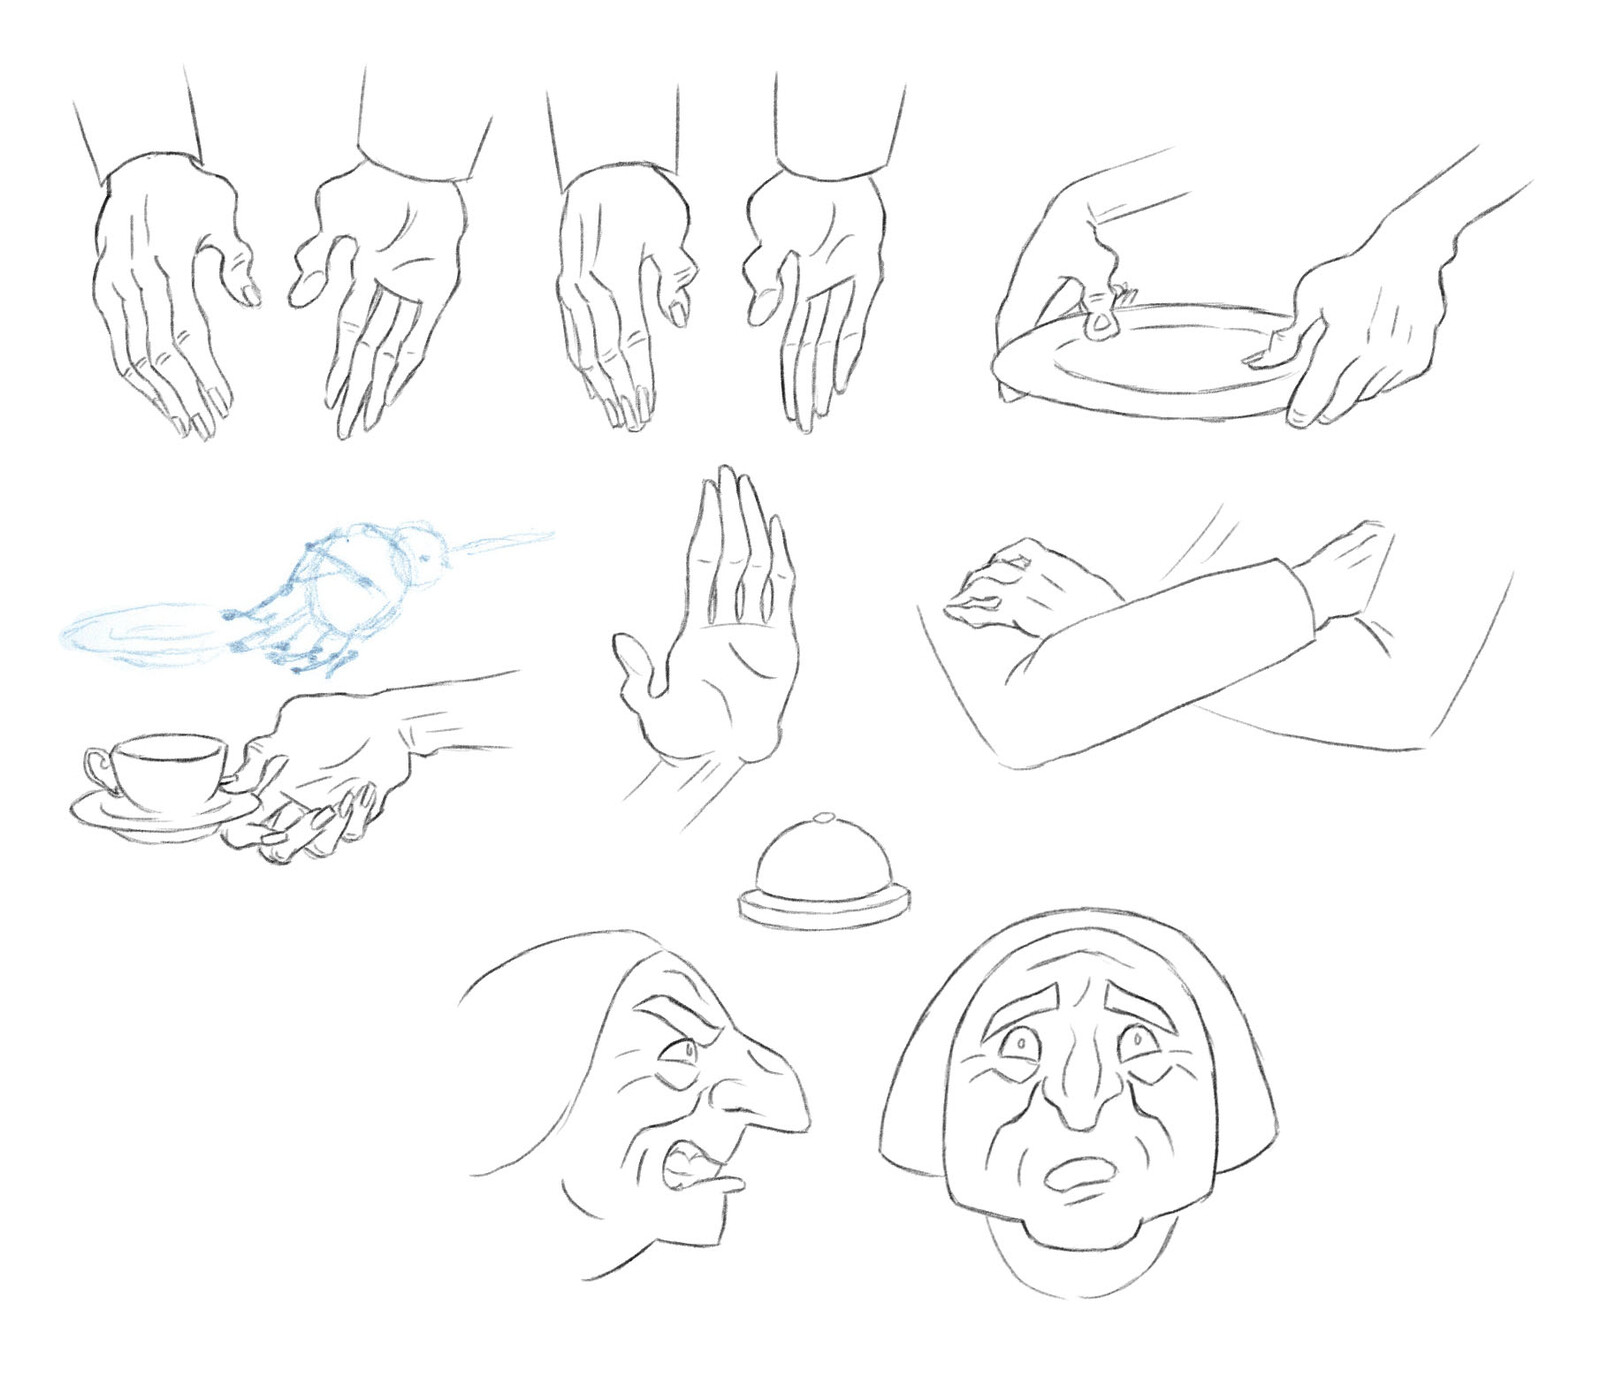 Grandma hands and expressions.